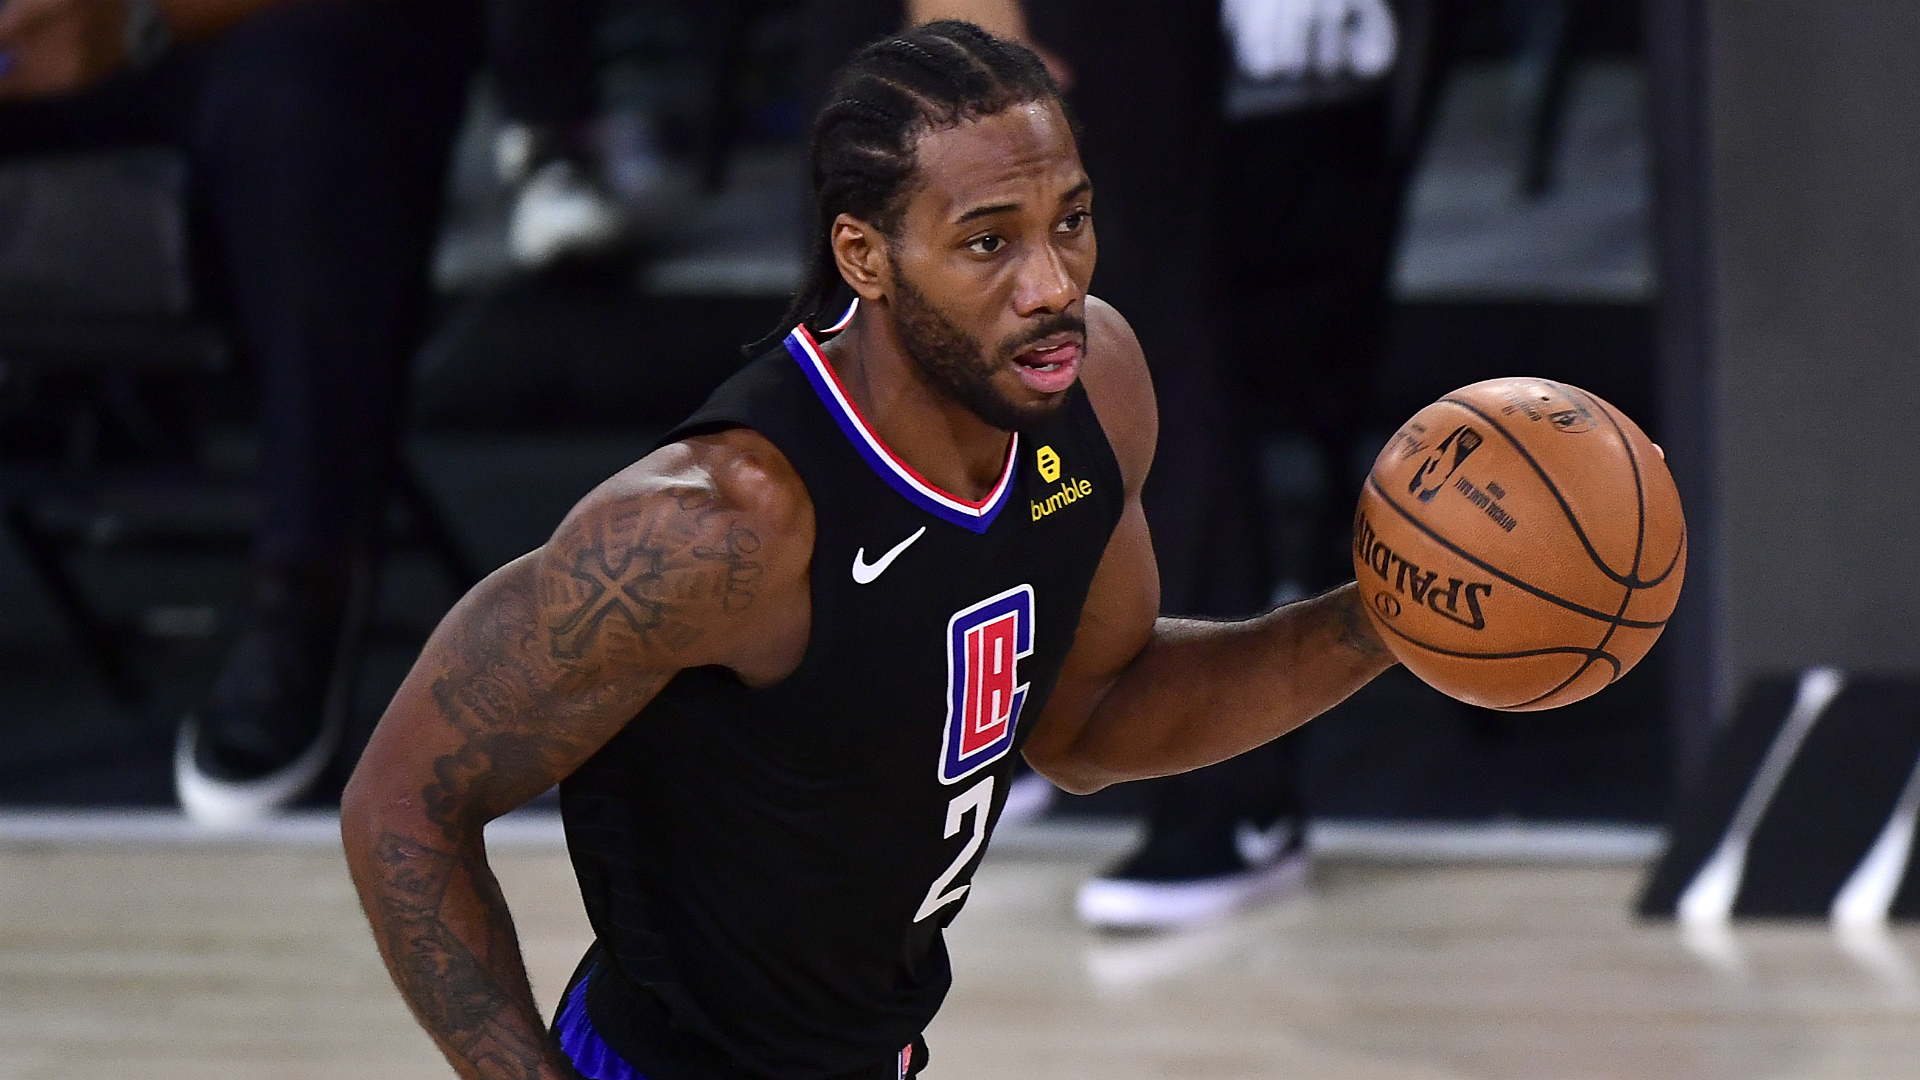 Kawhi eager to bounce back after Clippers' failures – Lue